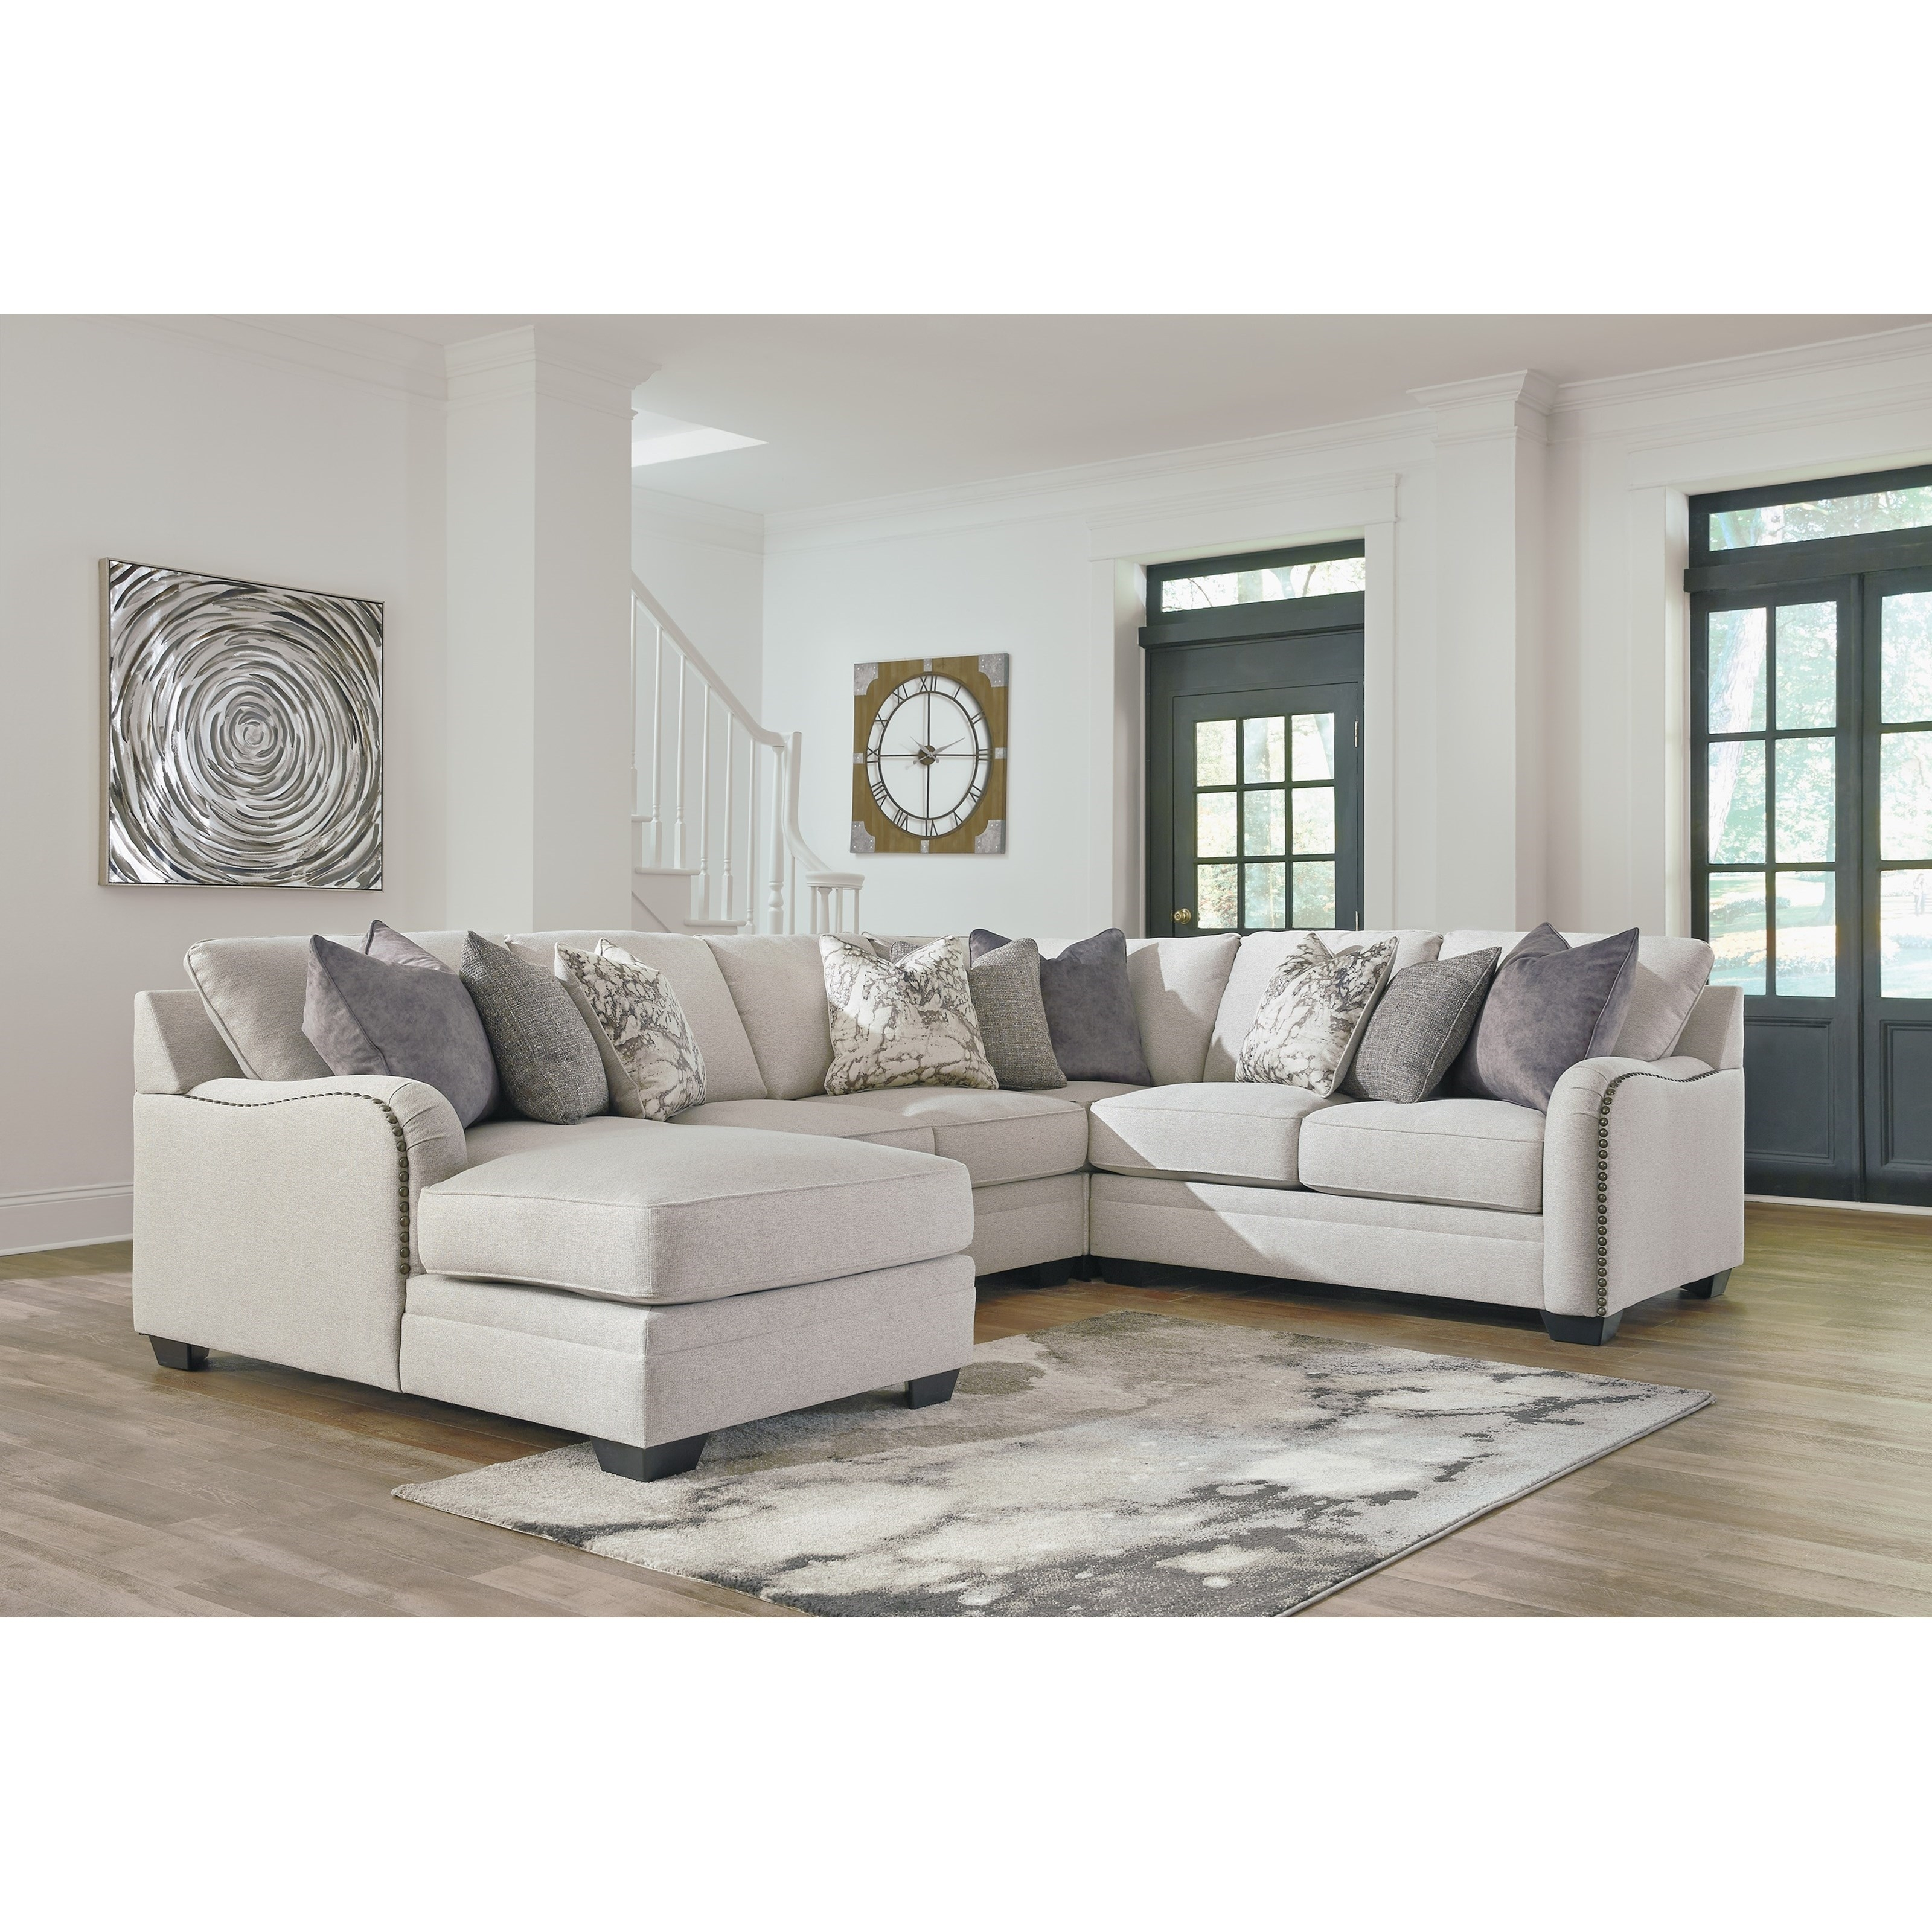 Dellara Casual 4 Piece Sectional With Left Chaise   Becker Furniture Regarding Blaine 4 Piece Sectionals (Image 8 of 25)